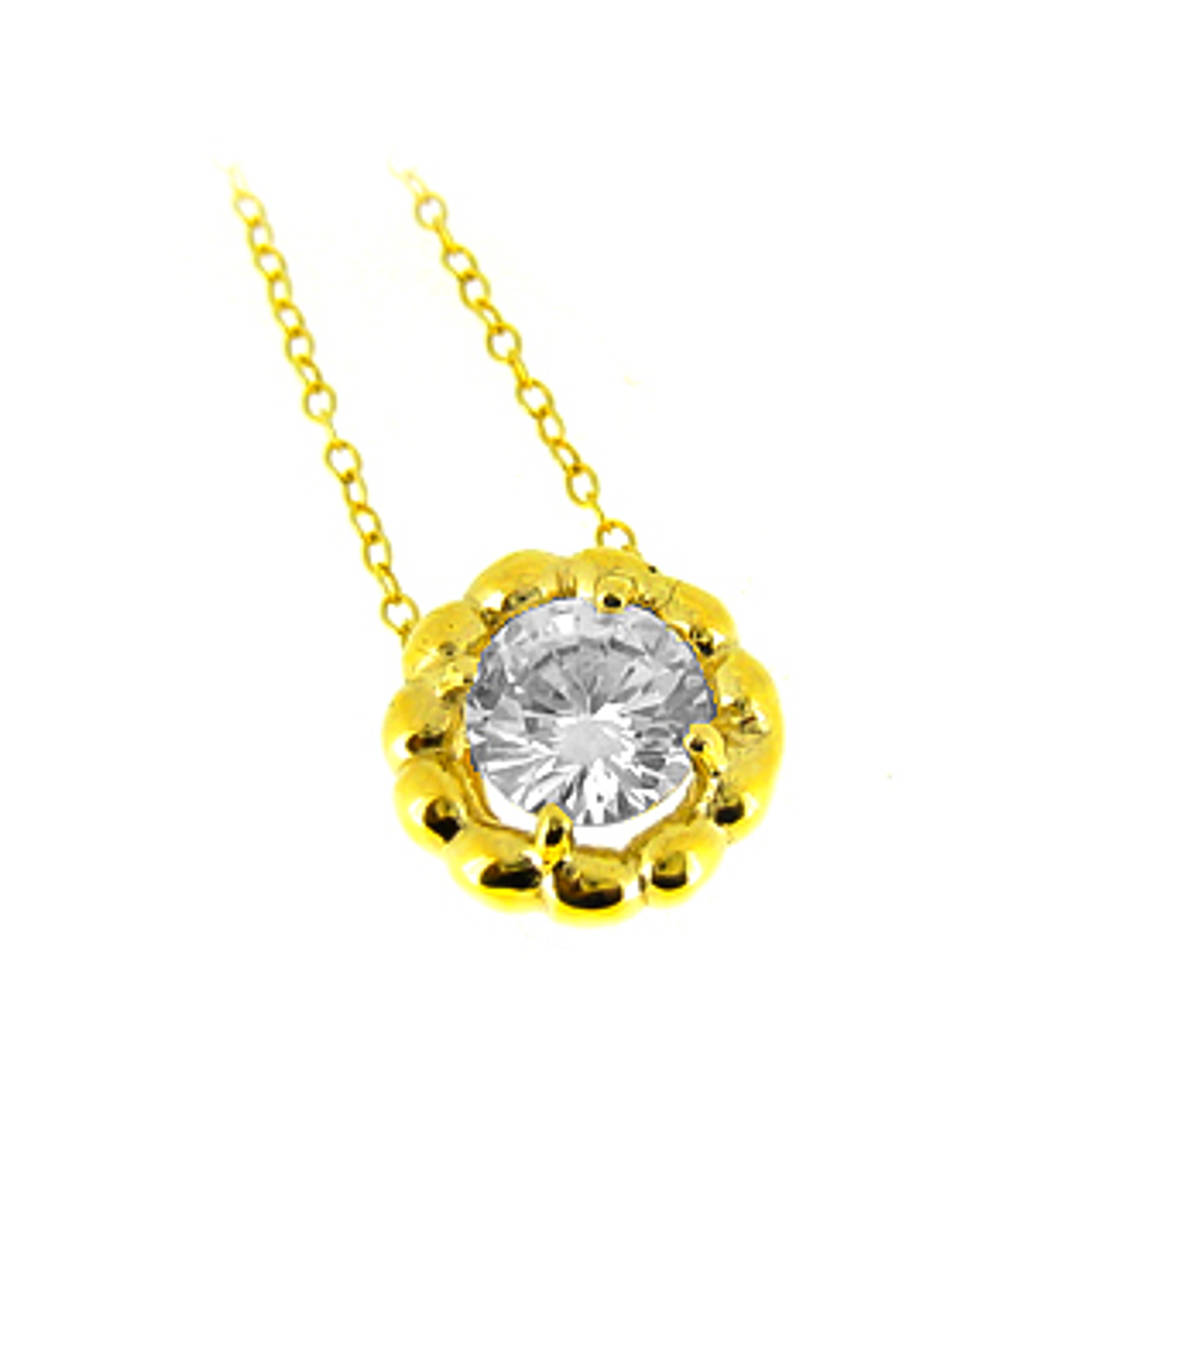 "9k yellow gold CZ round pendant on 9k yellow gold 18"" chain Metal: 9k yellow gold 9k yellow gold 18"" chain Length  1.2cm  Width  1.2cm Made in Ireland"